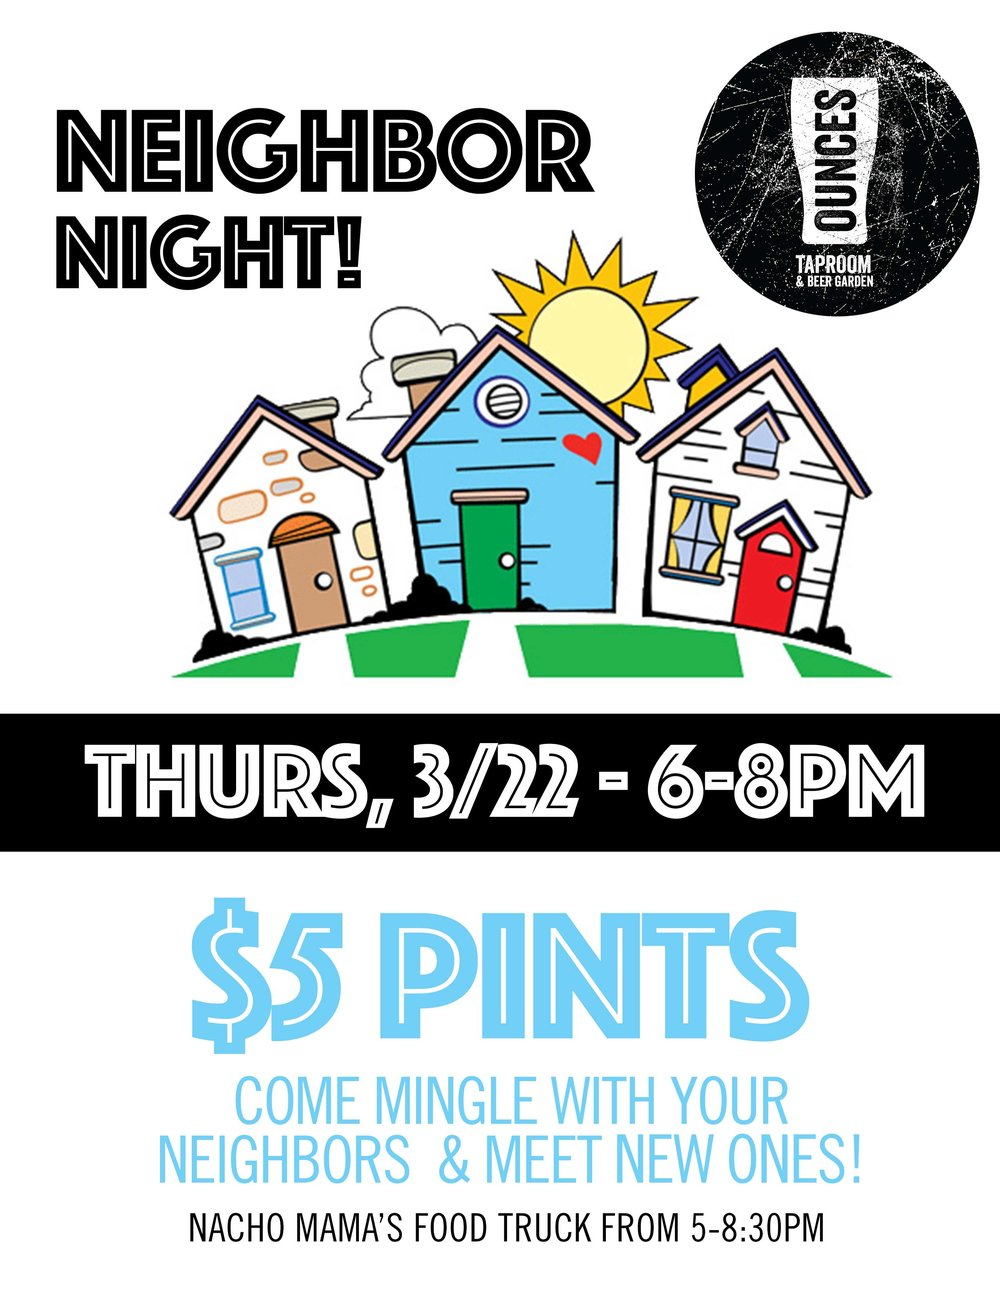 NEIGHBORNIGHT_FLYER.jpg